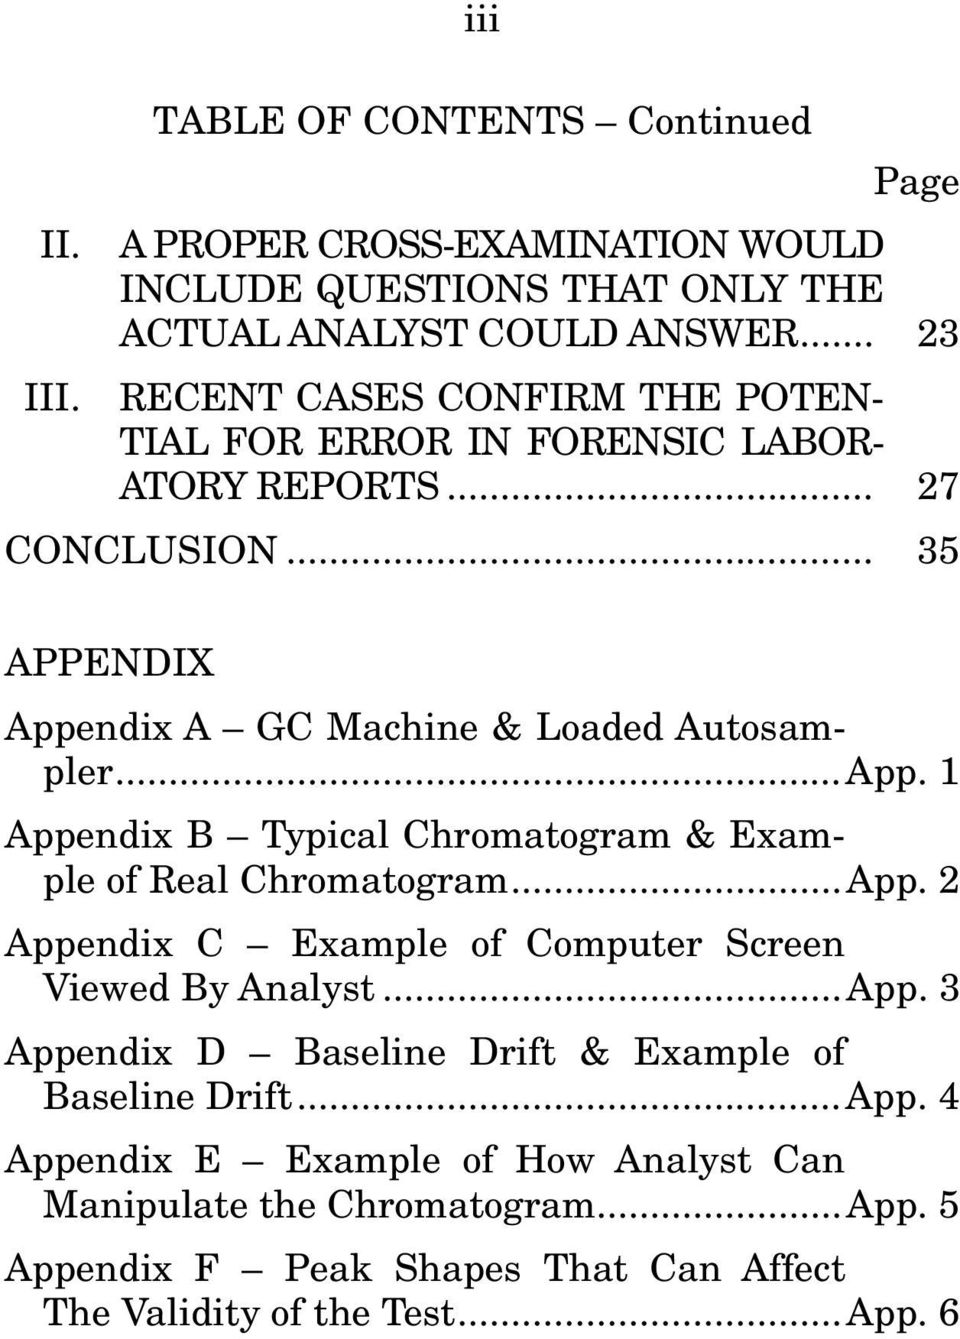 ndix A GC Machine & Loaded Autosampler... App. 1 Appendix B Typical Chromatogram & Example of Real Chromatogram... App. 2 Appendix C Example of Computer Screen Viewed By Analyst.